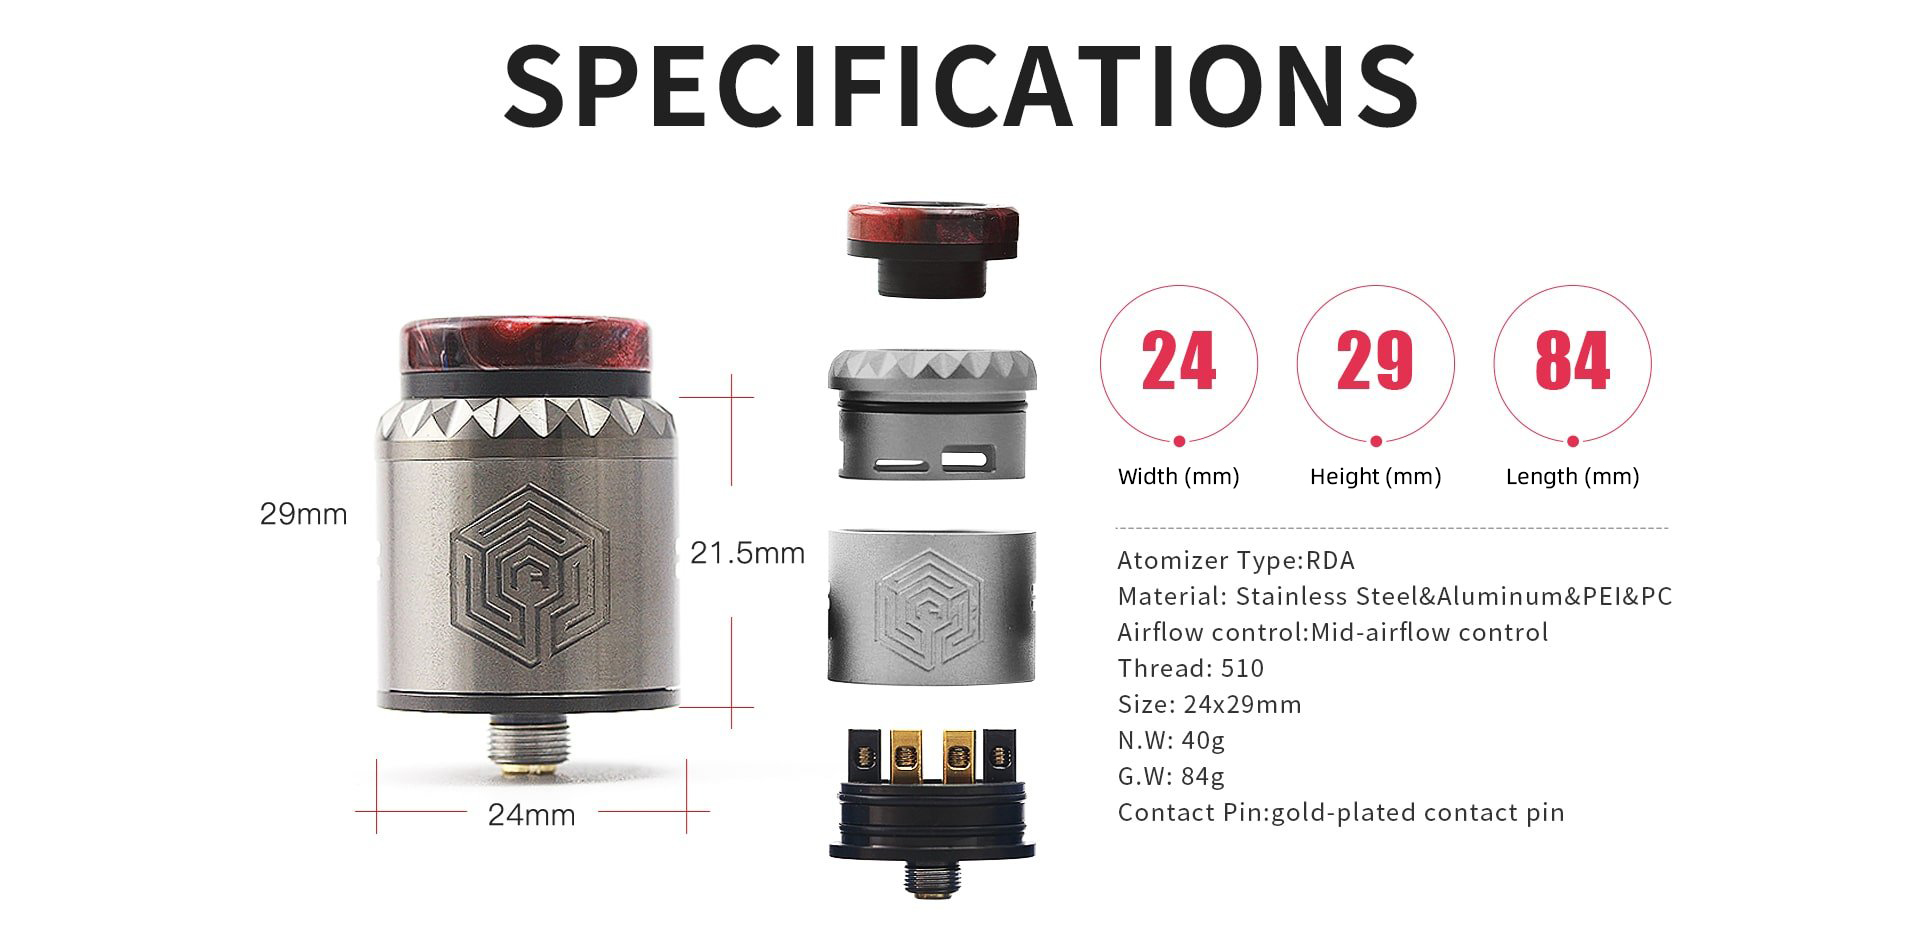 Advken Artha V2 RDA Specifications